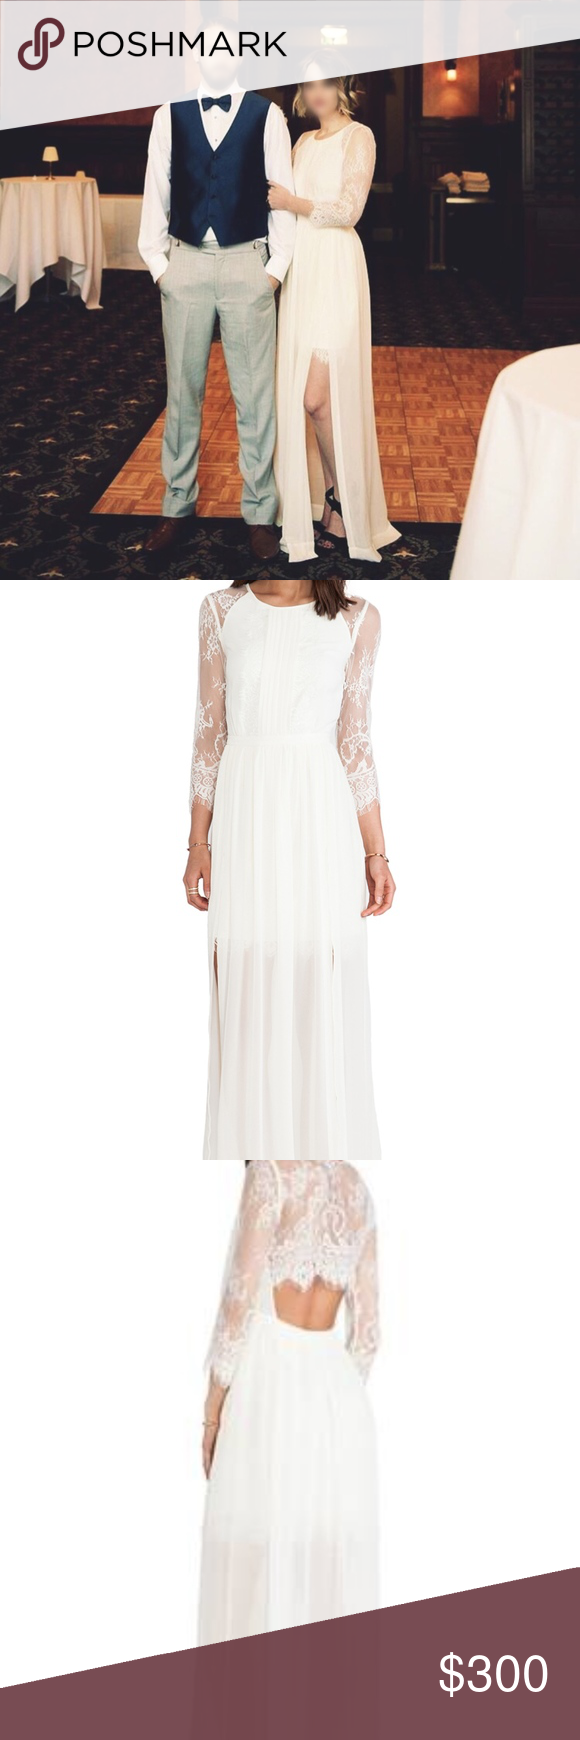 Lace wedding dress under 300  Alice by Temperley Hemingway Dress White  Temperley Alice and Gowns